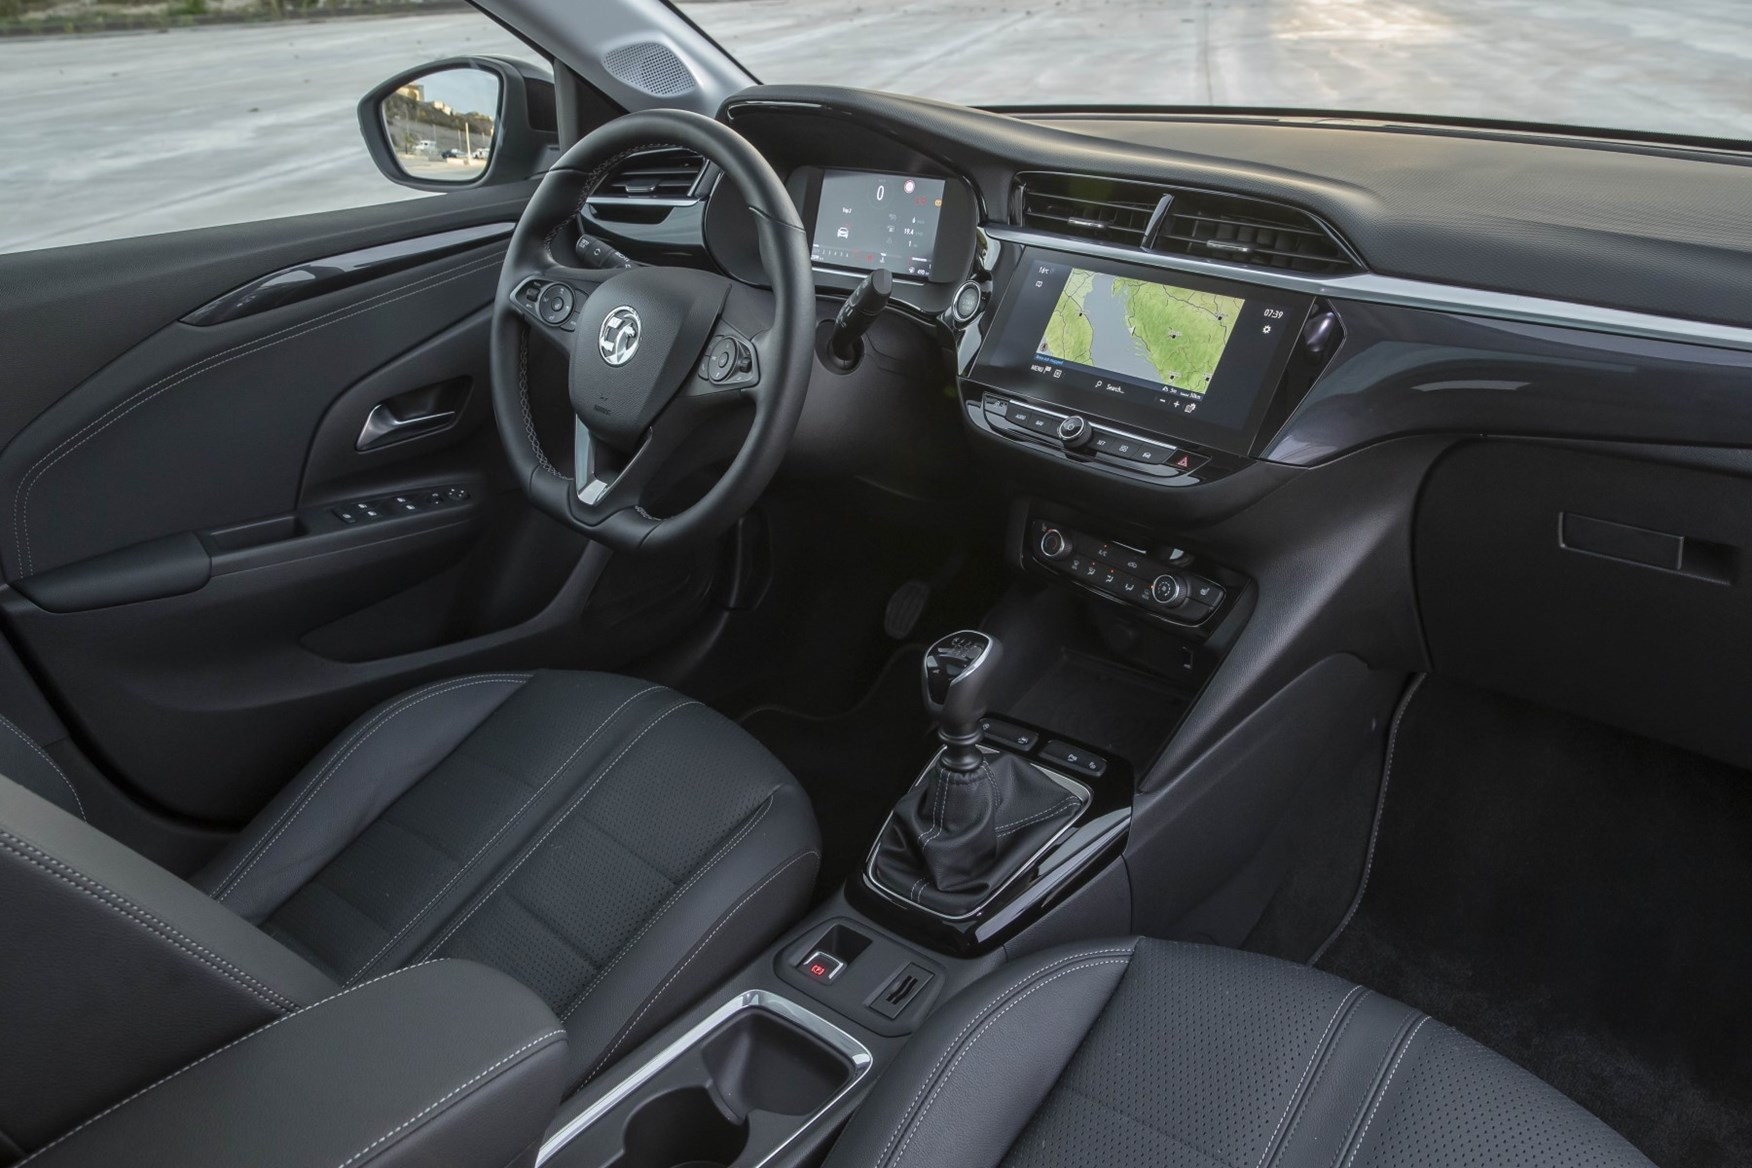 Vauxhall Corsa 2020 Interior Layout Dashboard Infotainment Parkers